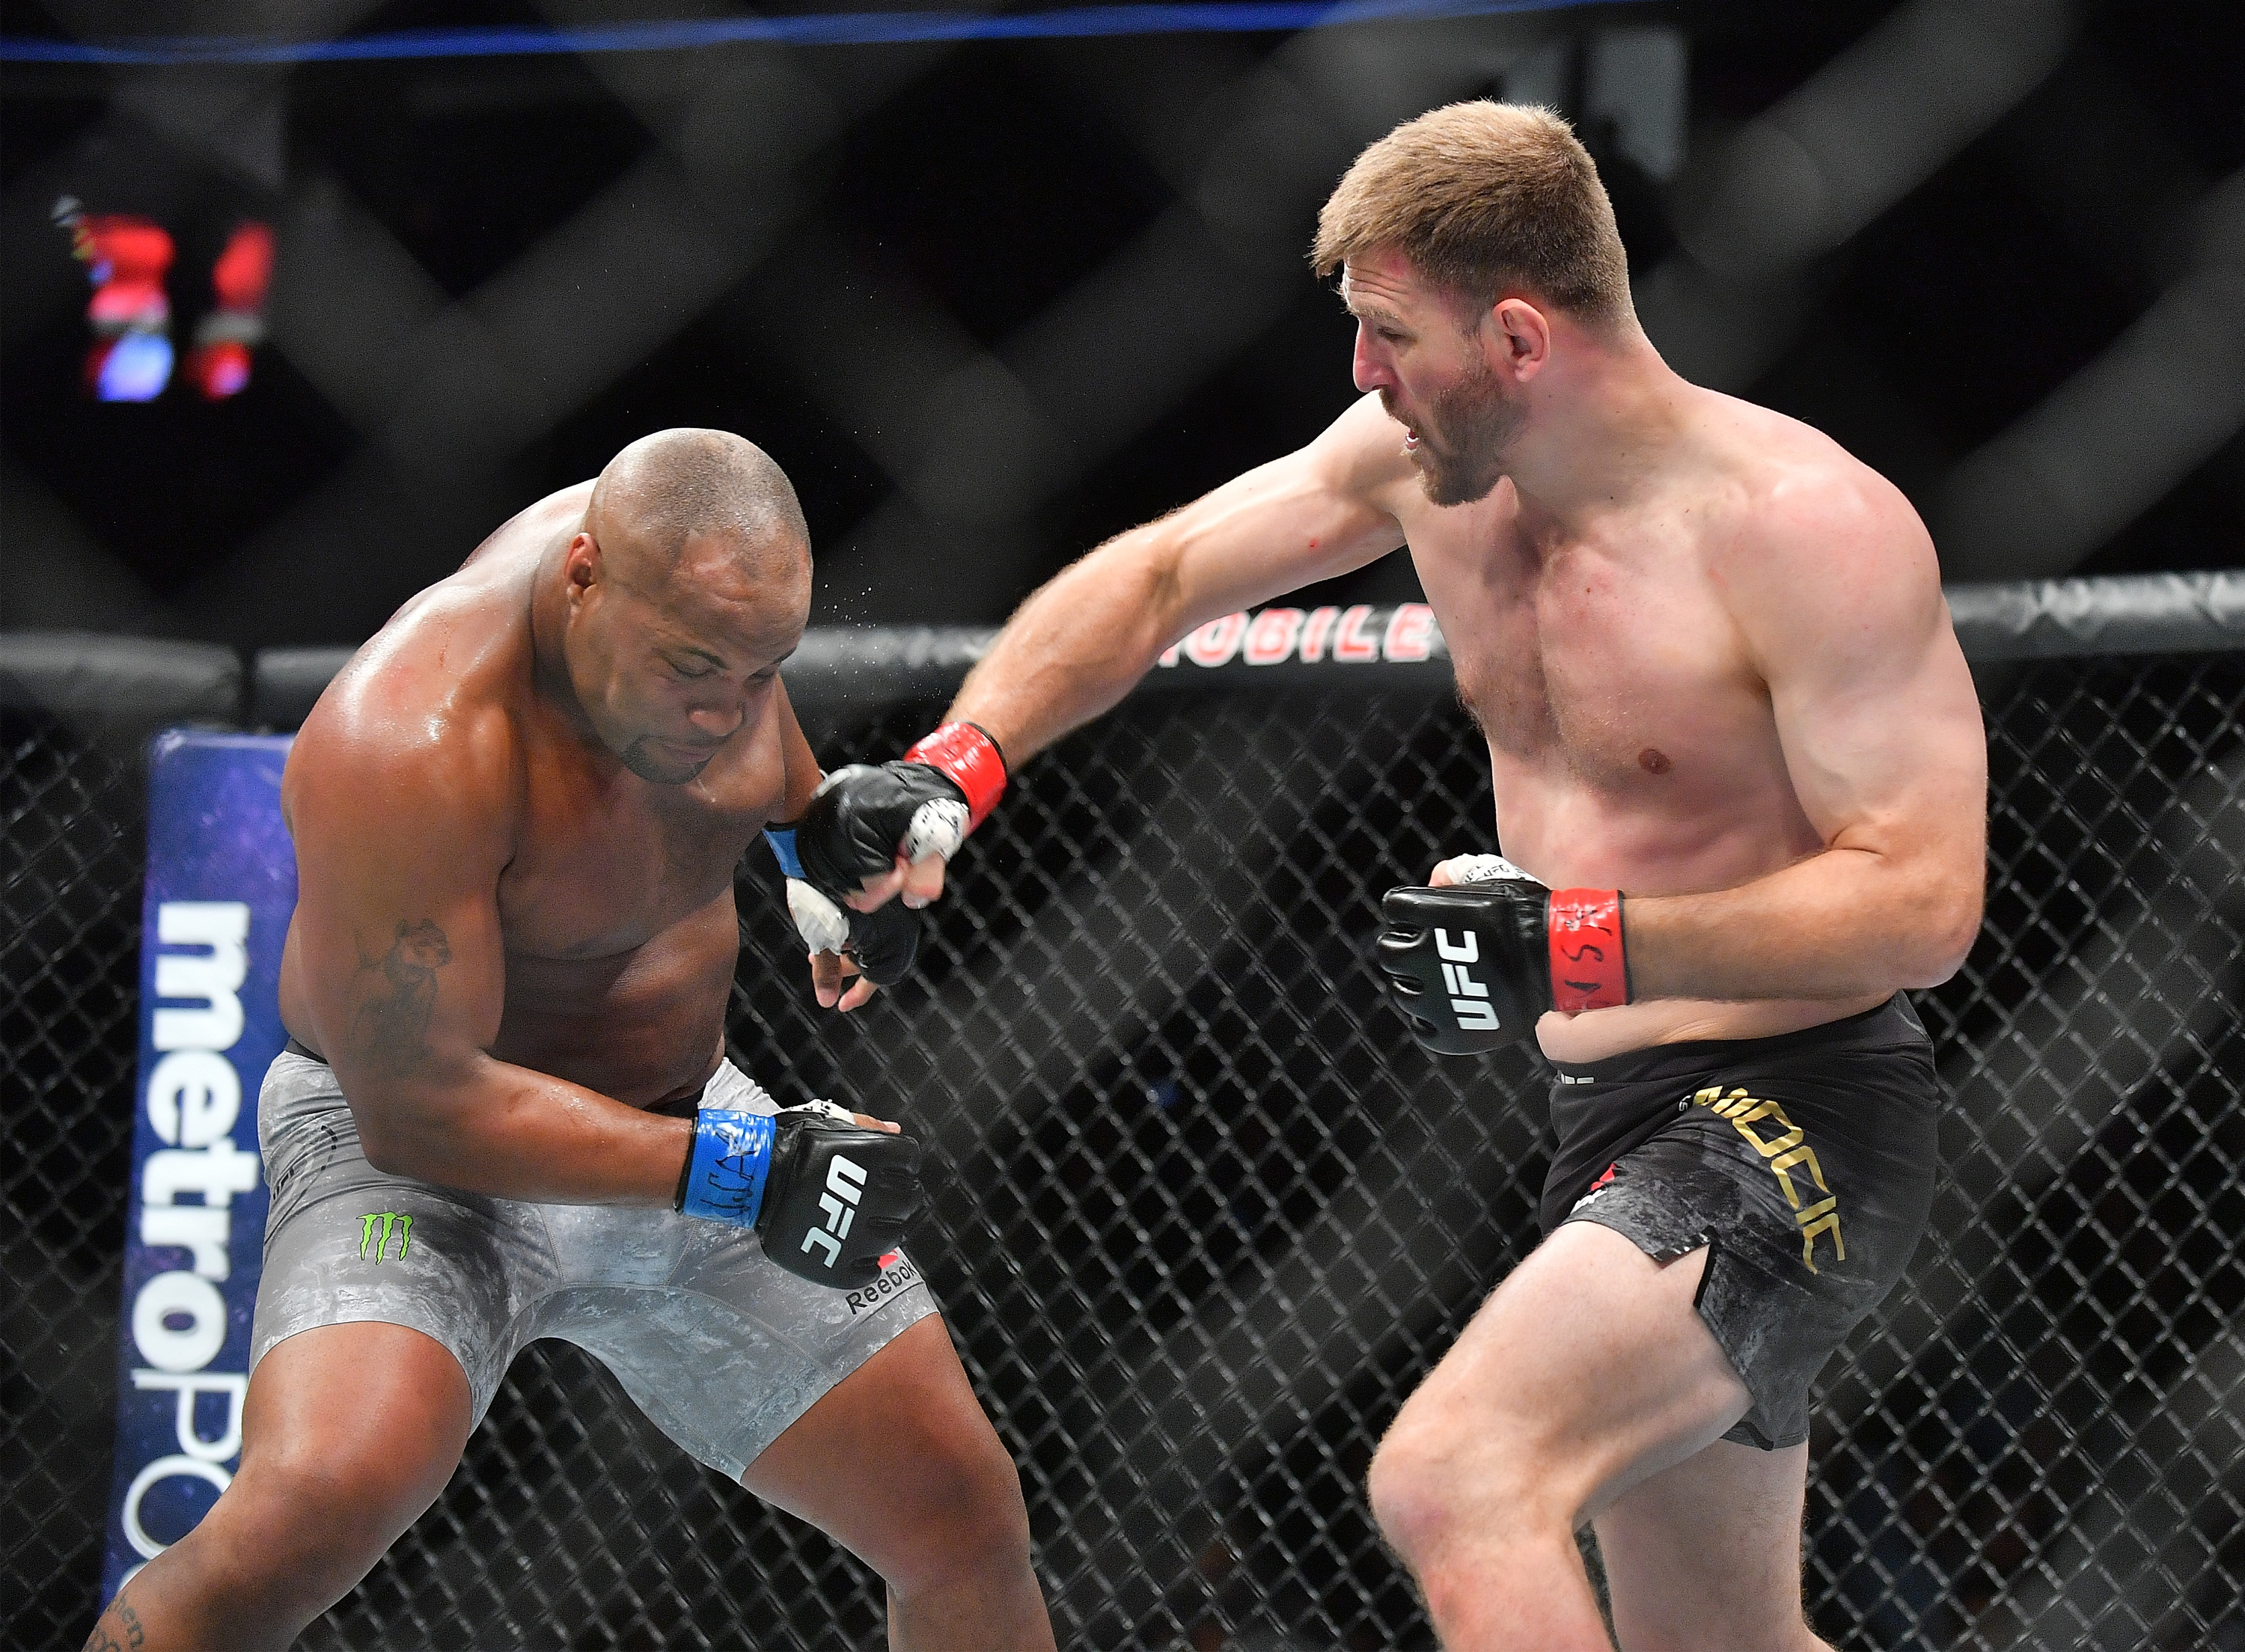 UFC 241 results: Live stream 'Cormier vs Miocic 2' play-by